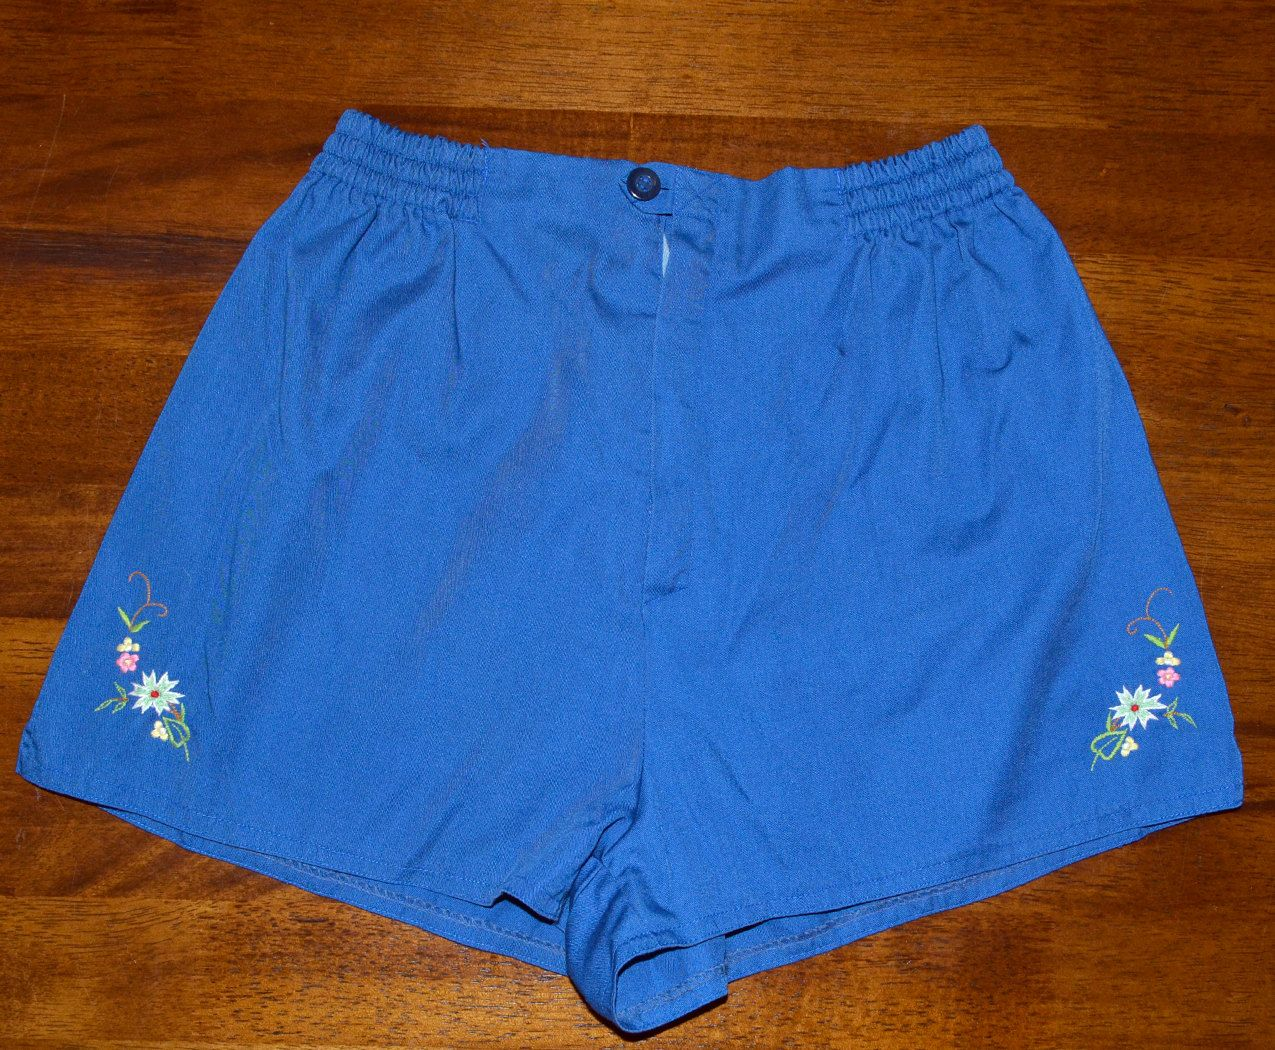 4e3e7bb3ae7a89 vintage 70s jogging shorts embroidered flower camp delicate preppy navy blue  Small 80s. $20.00, via Etsy.